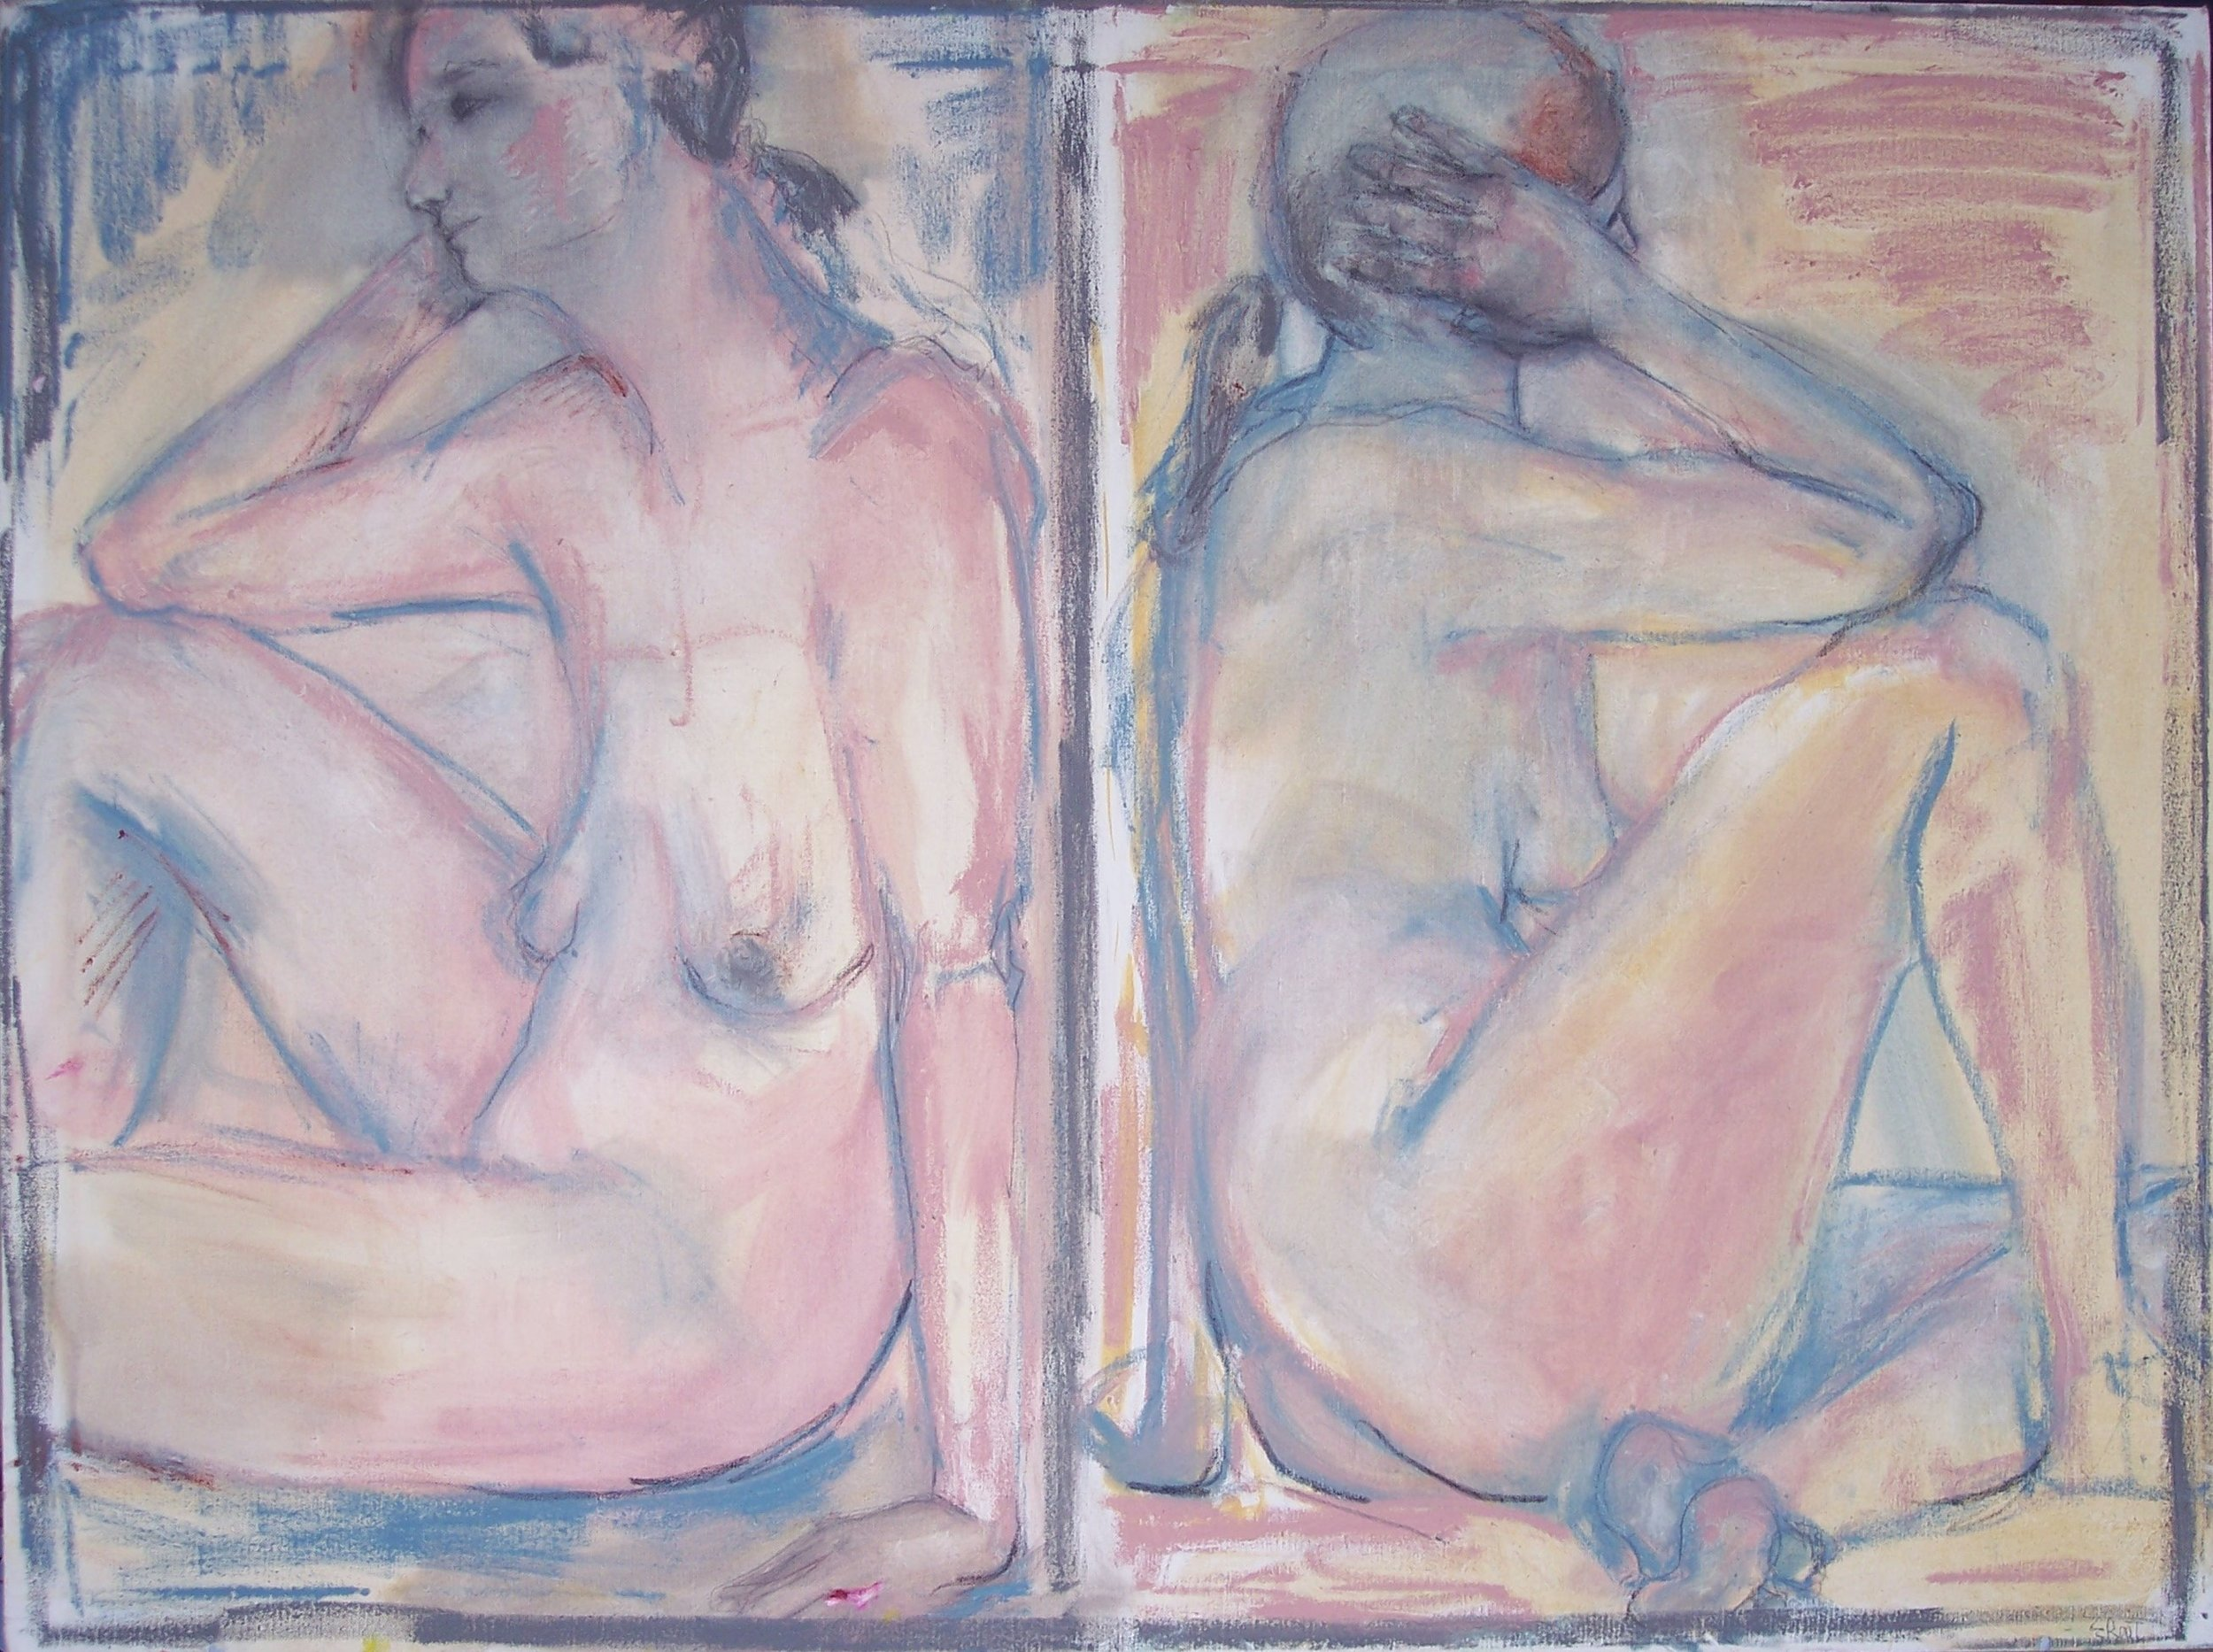 Two Nudes (30 X 40)